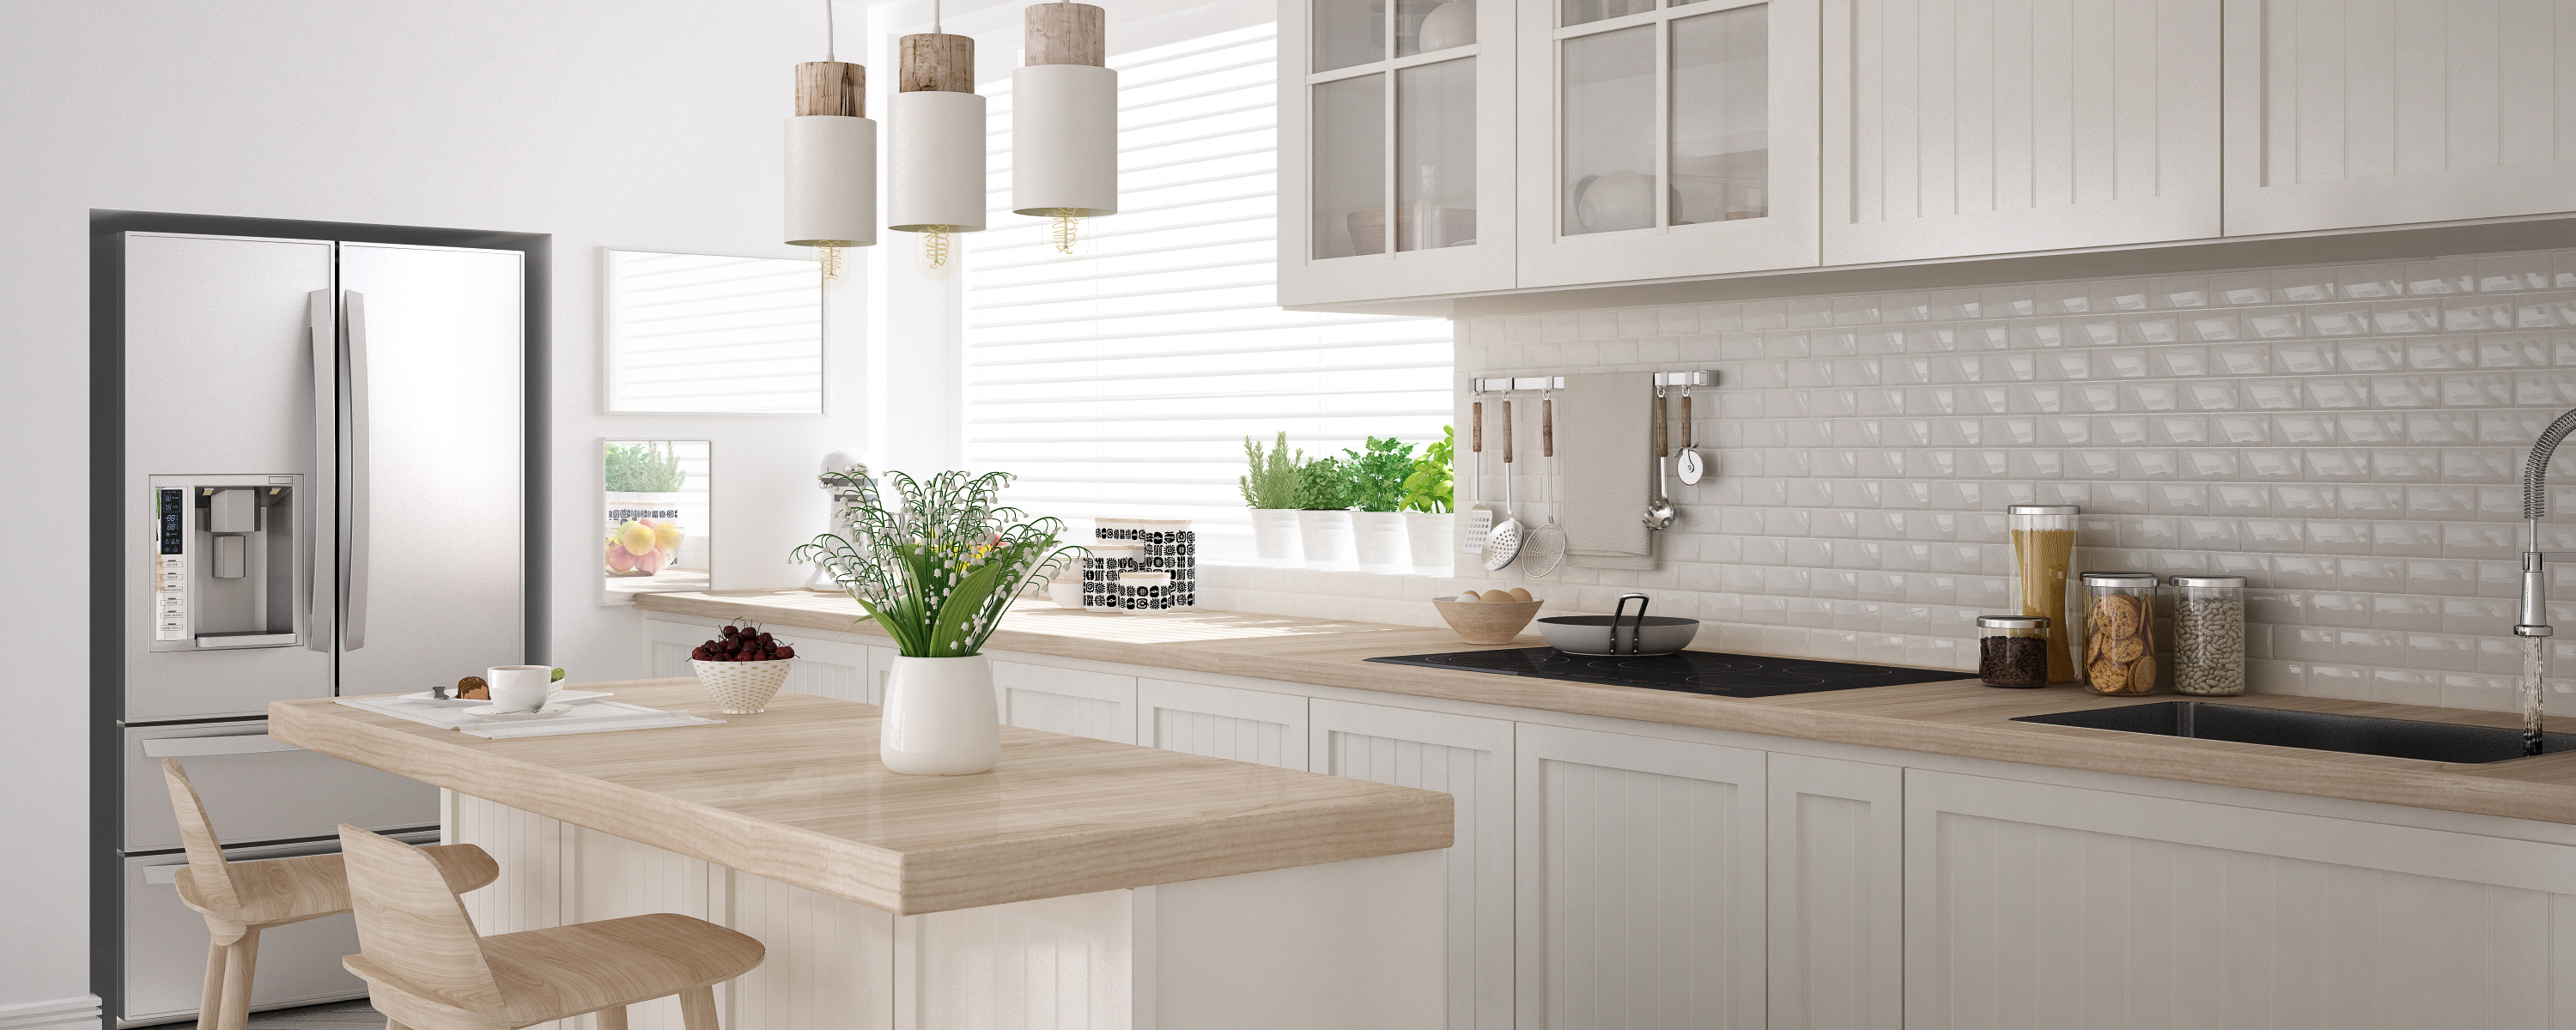 Scandinavian classic kitchen with wooden and white details, mini